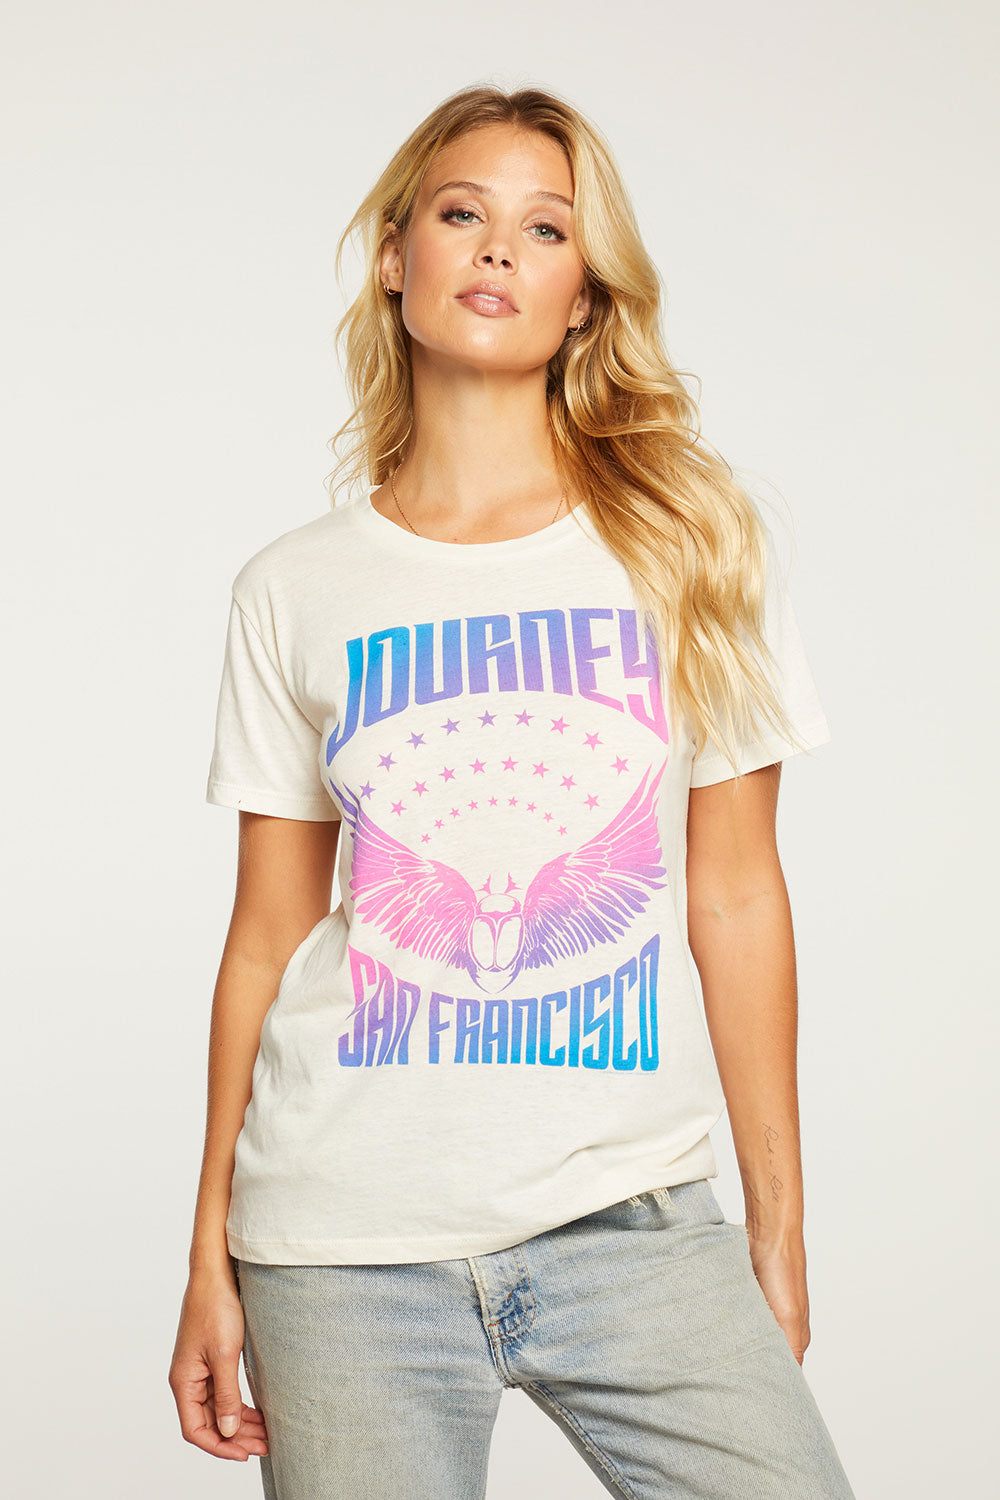 Journey - San Francisco WOMENS chaserbrand4.myshopify.com